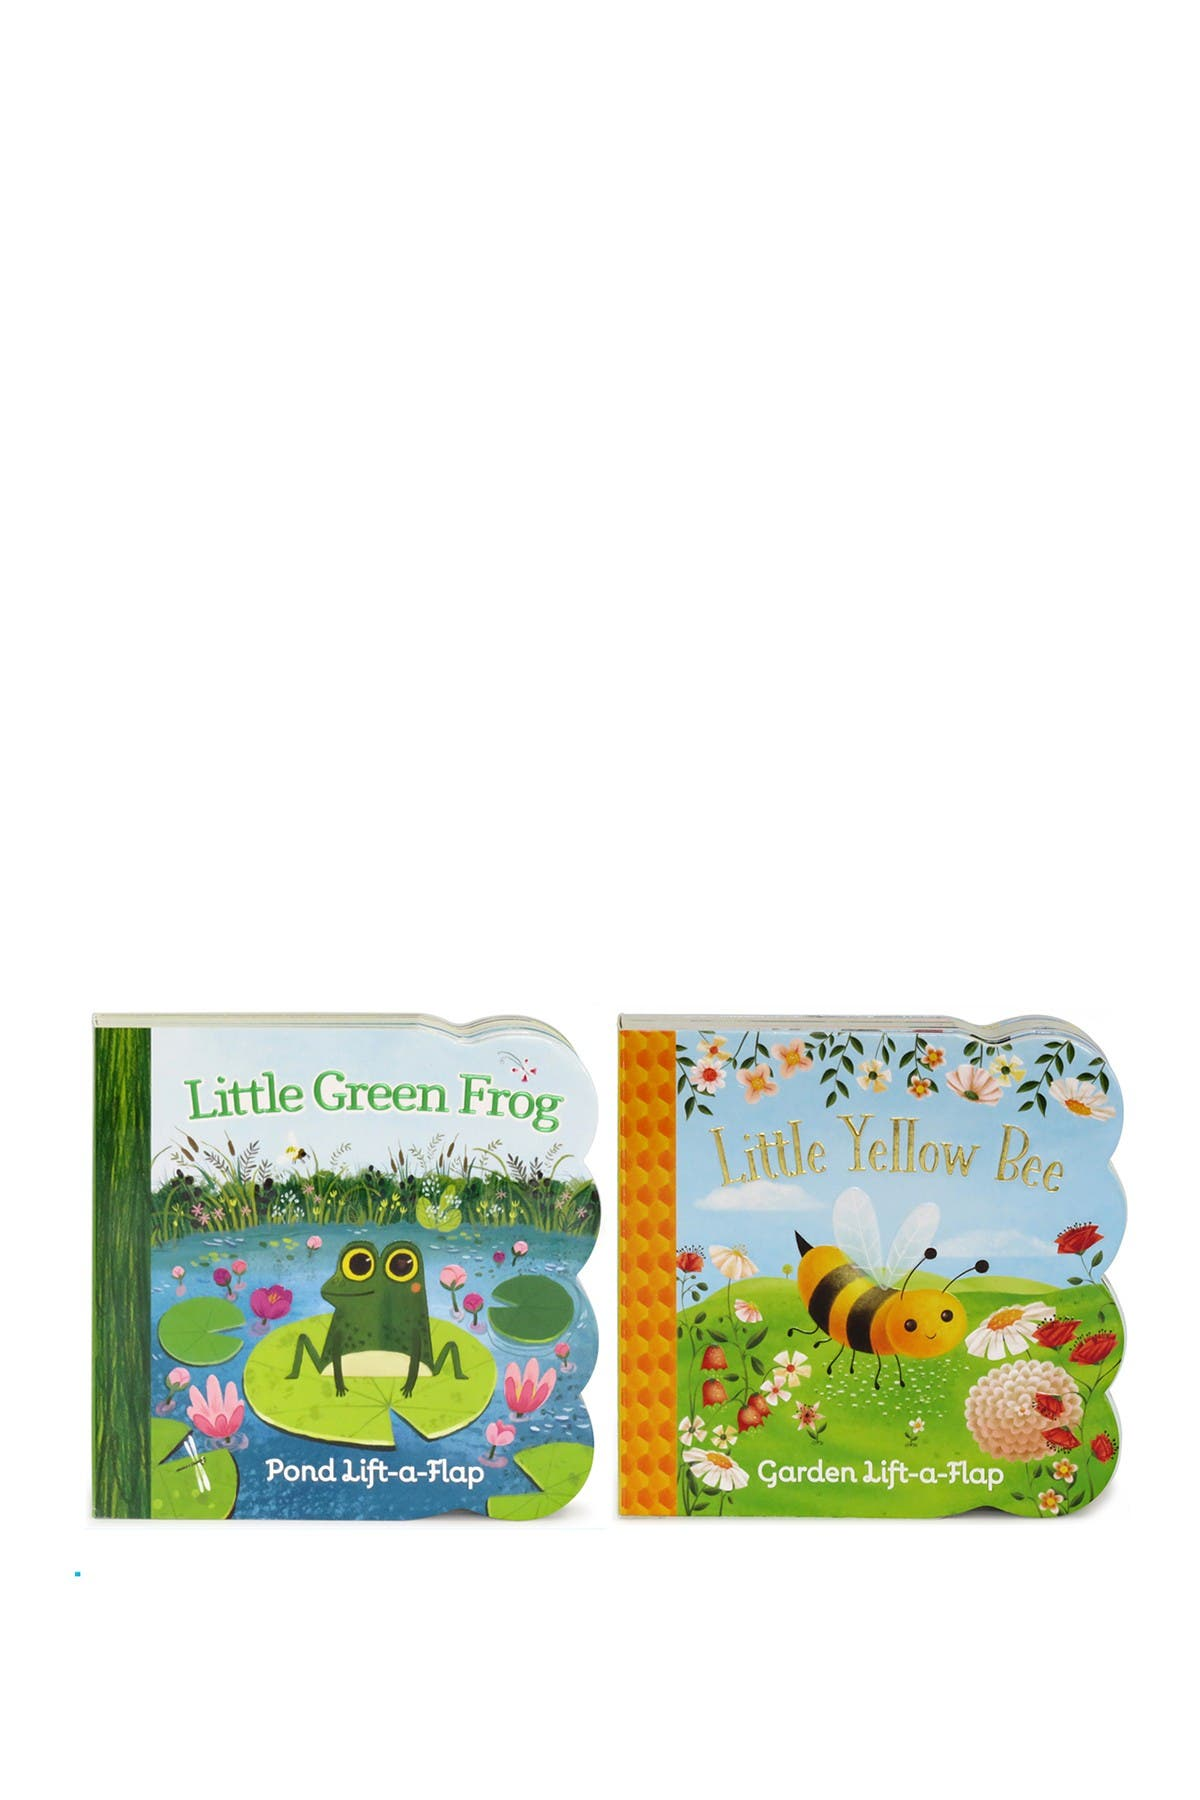 Image of COTTAGE DOOR PRESS 2-Pack: Little Yellow Bee and Little Green Frog Lift-a-Flap Books